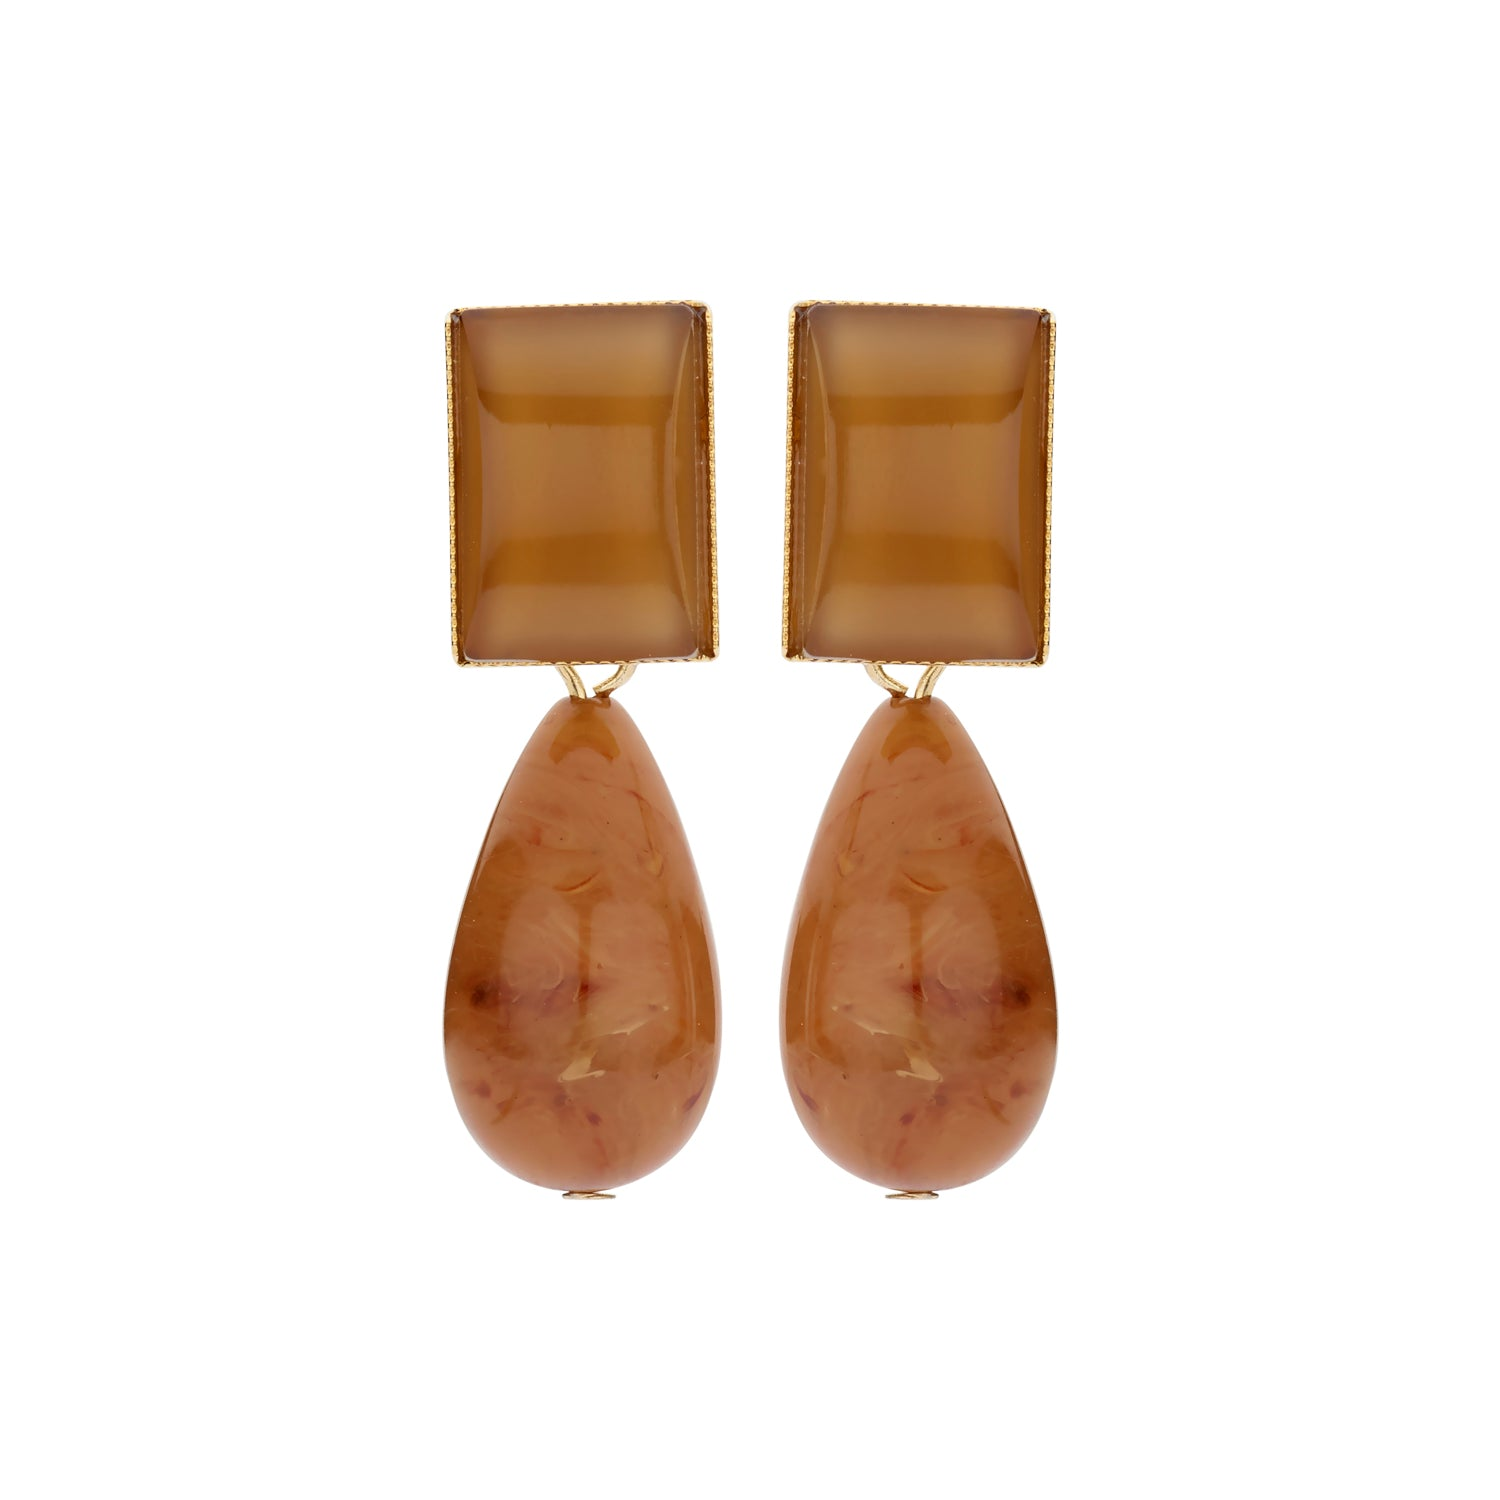 New Playa camel earrings - Souvenirs de Pomme